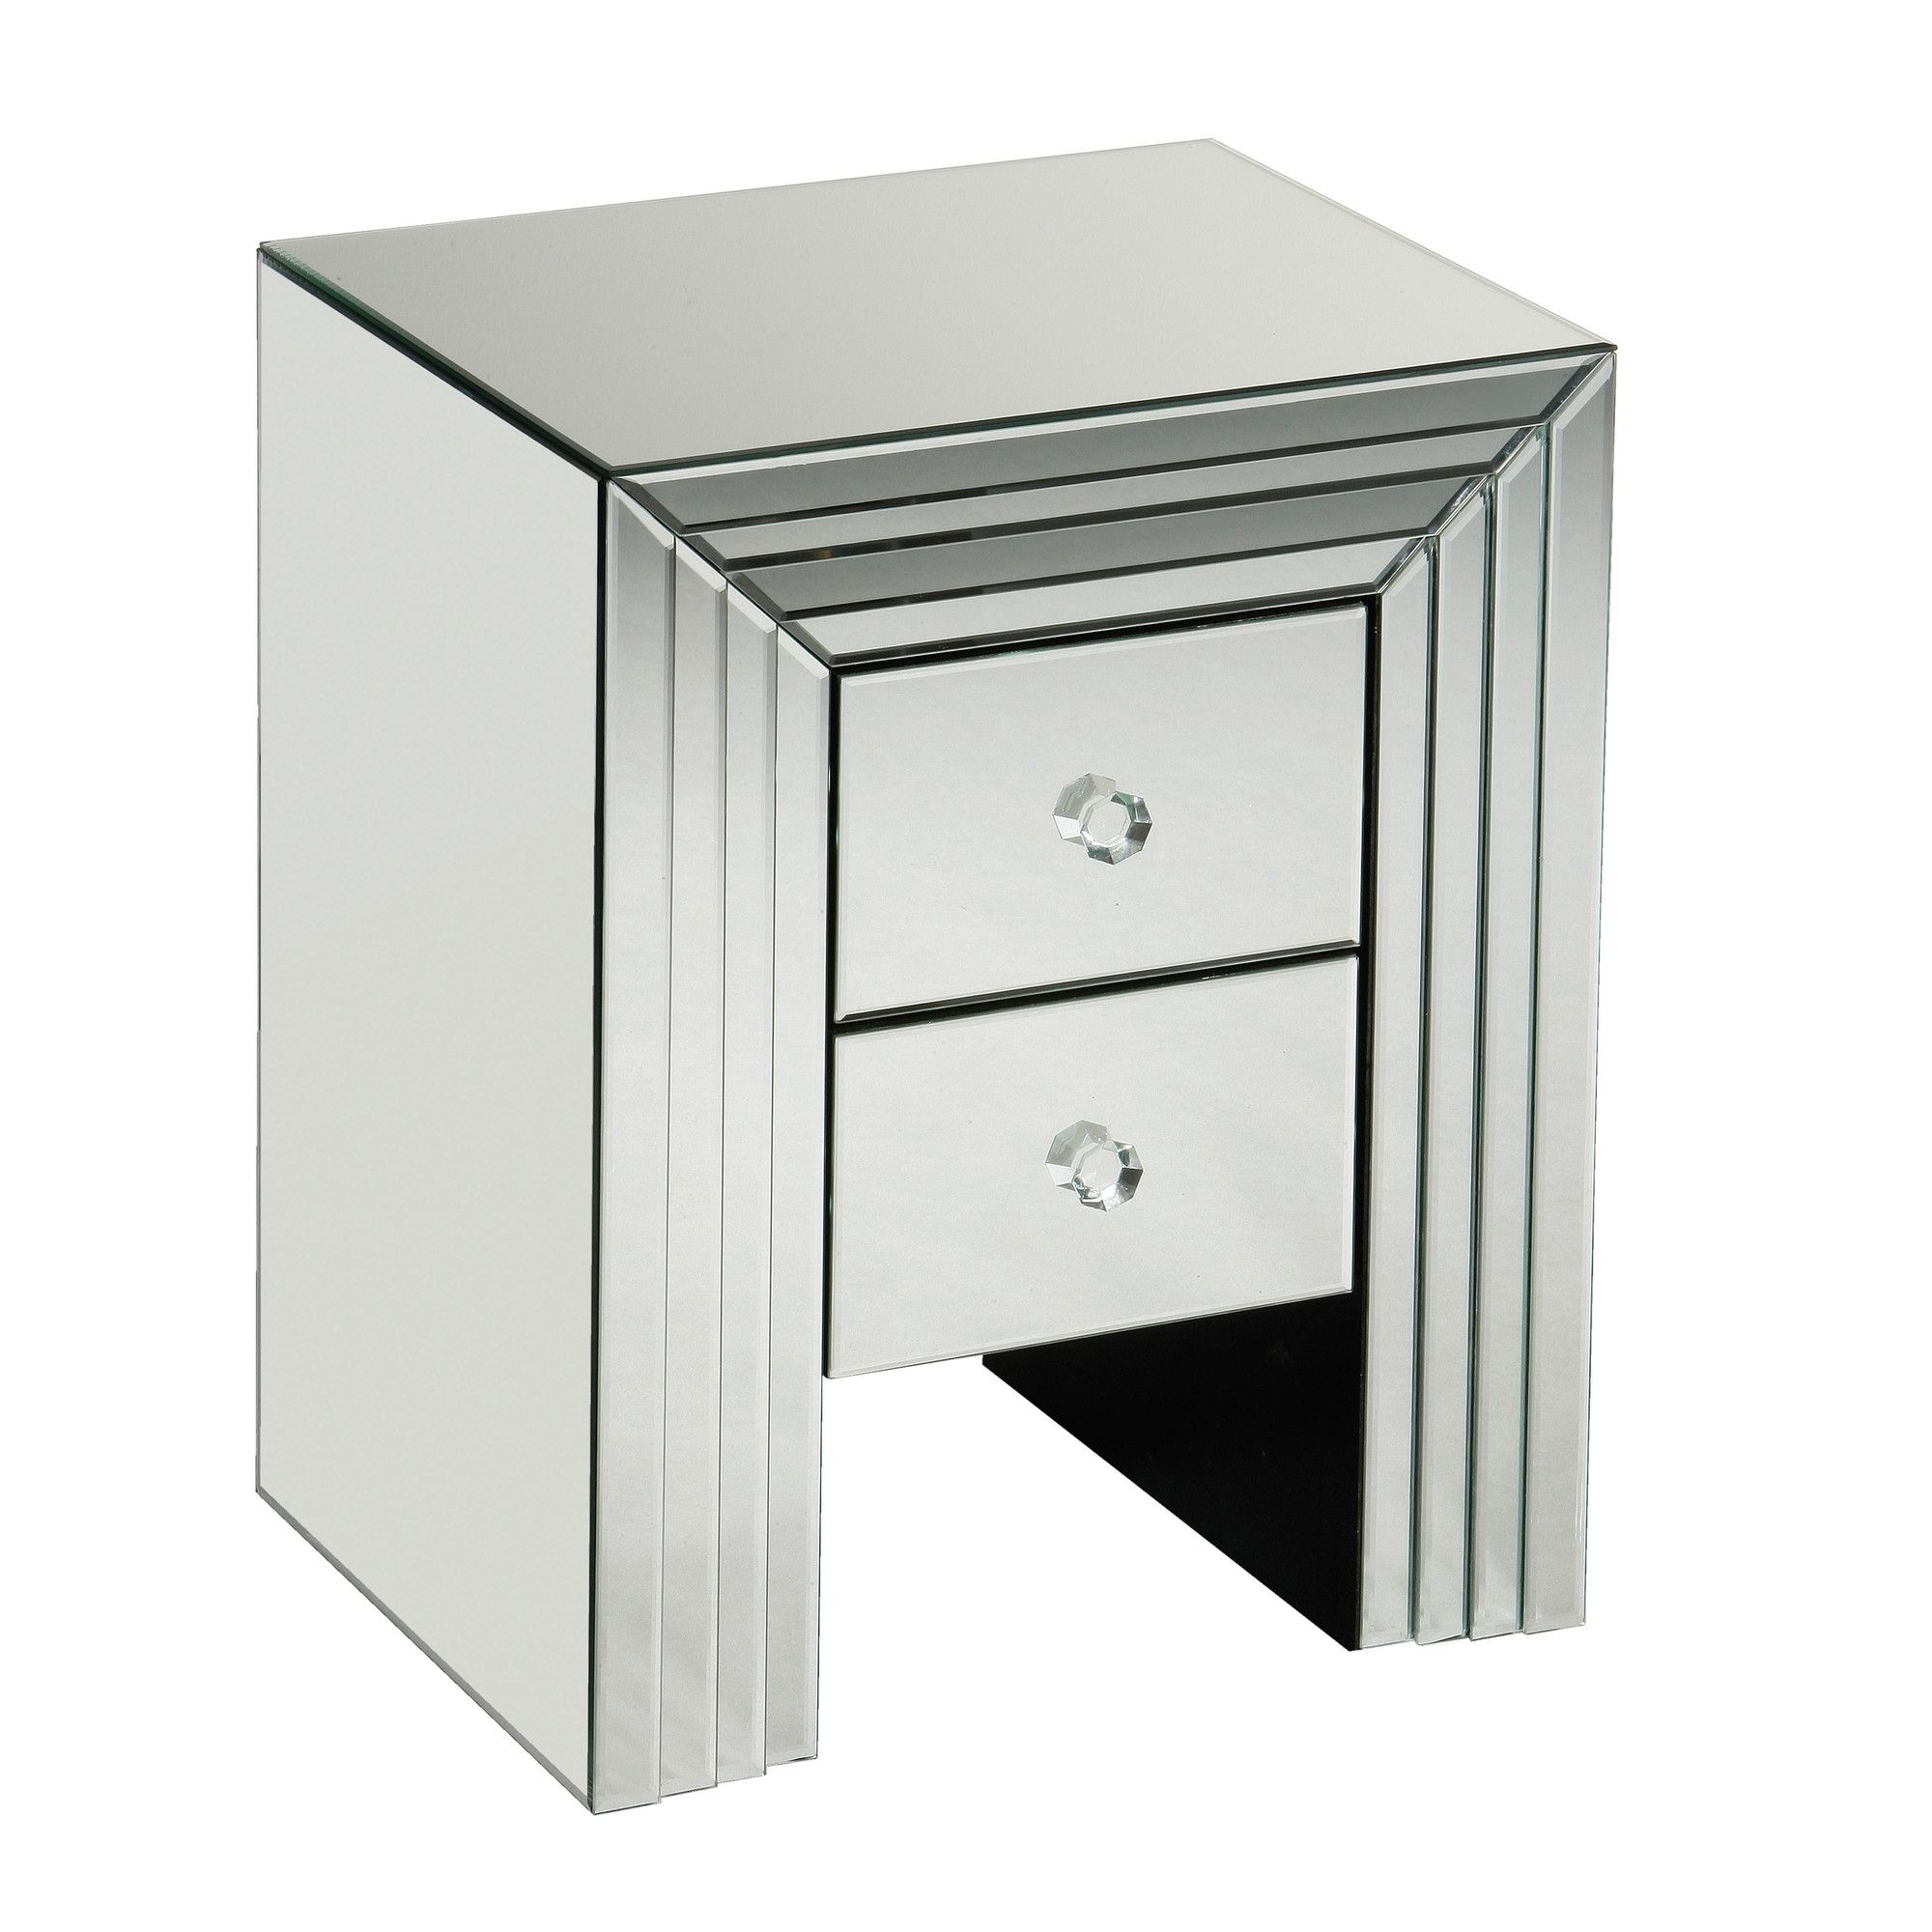 Premier Housewares New Line Bedside Cabinet at Tesco Direct